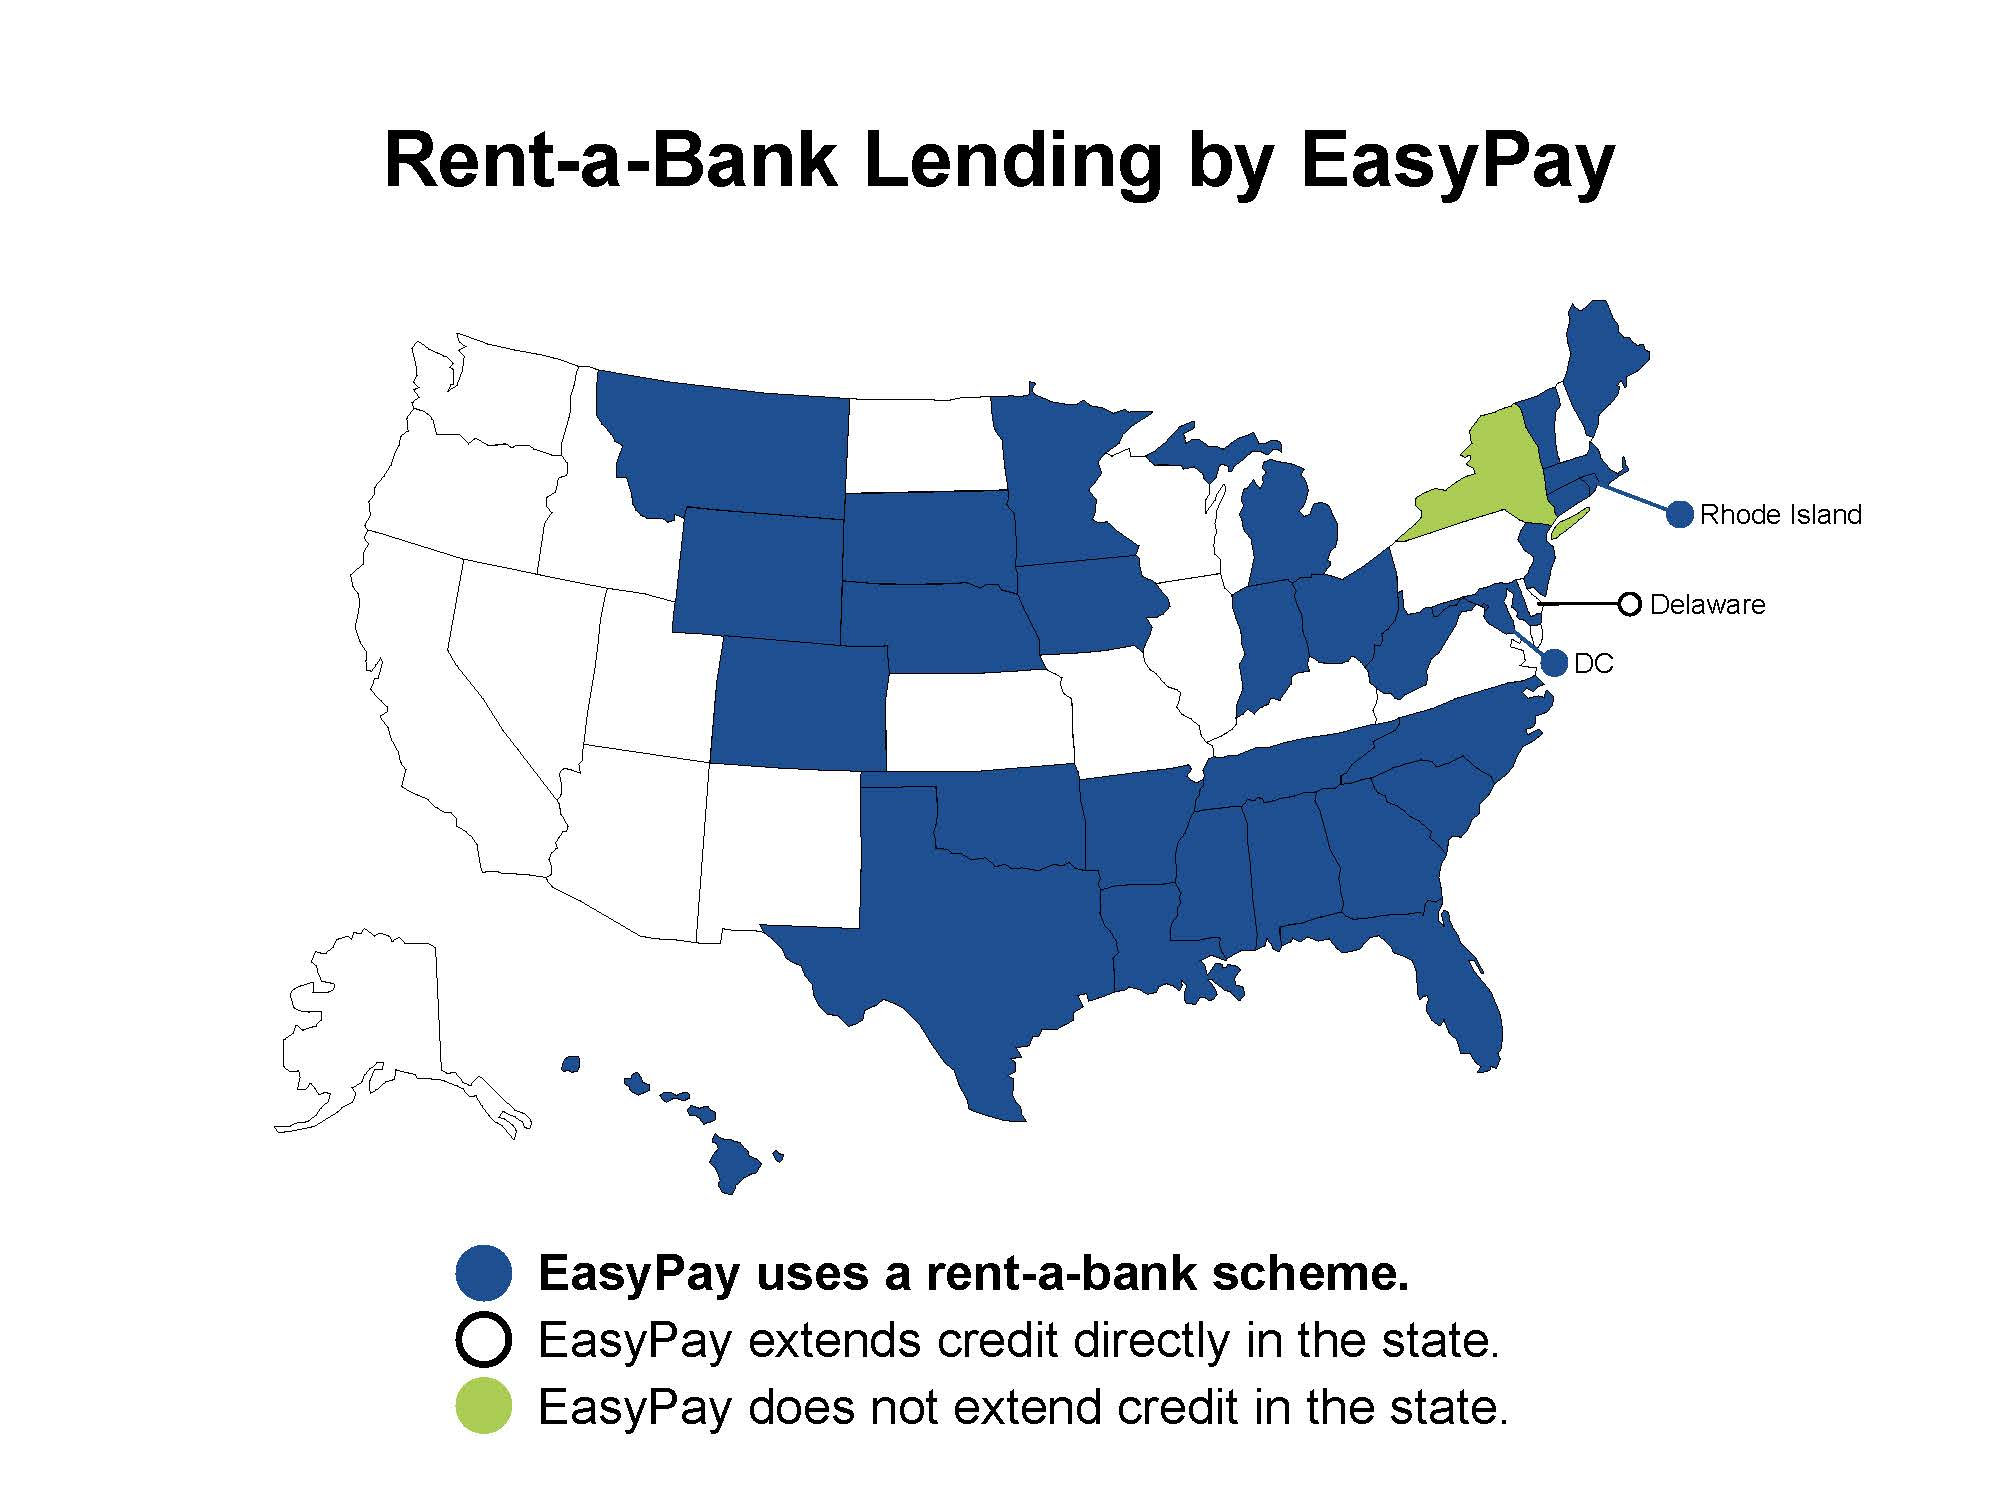 Map of the U.S. in which the states that EasyPay use rent-a-bank schemes to avoid state rate caps are colored in blue. States in which EasyPay directly lends are white, while the states in which the organization does not lend are in green.